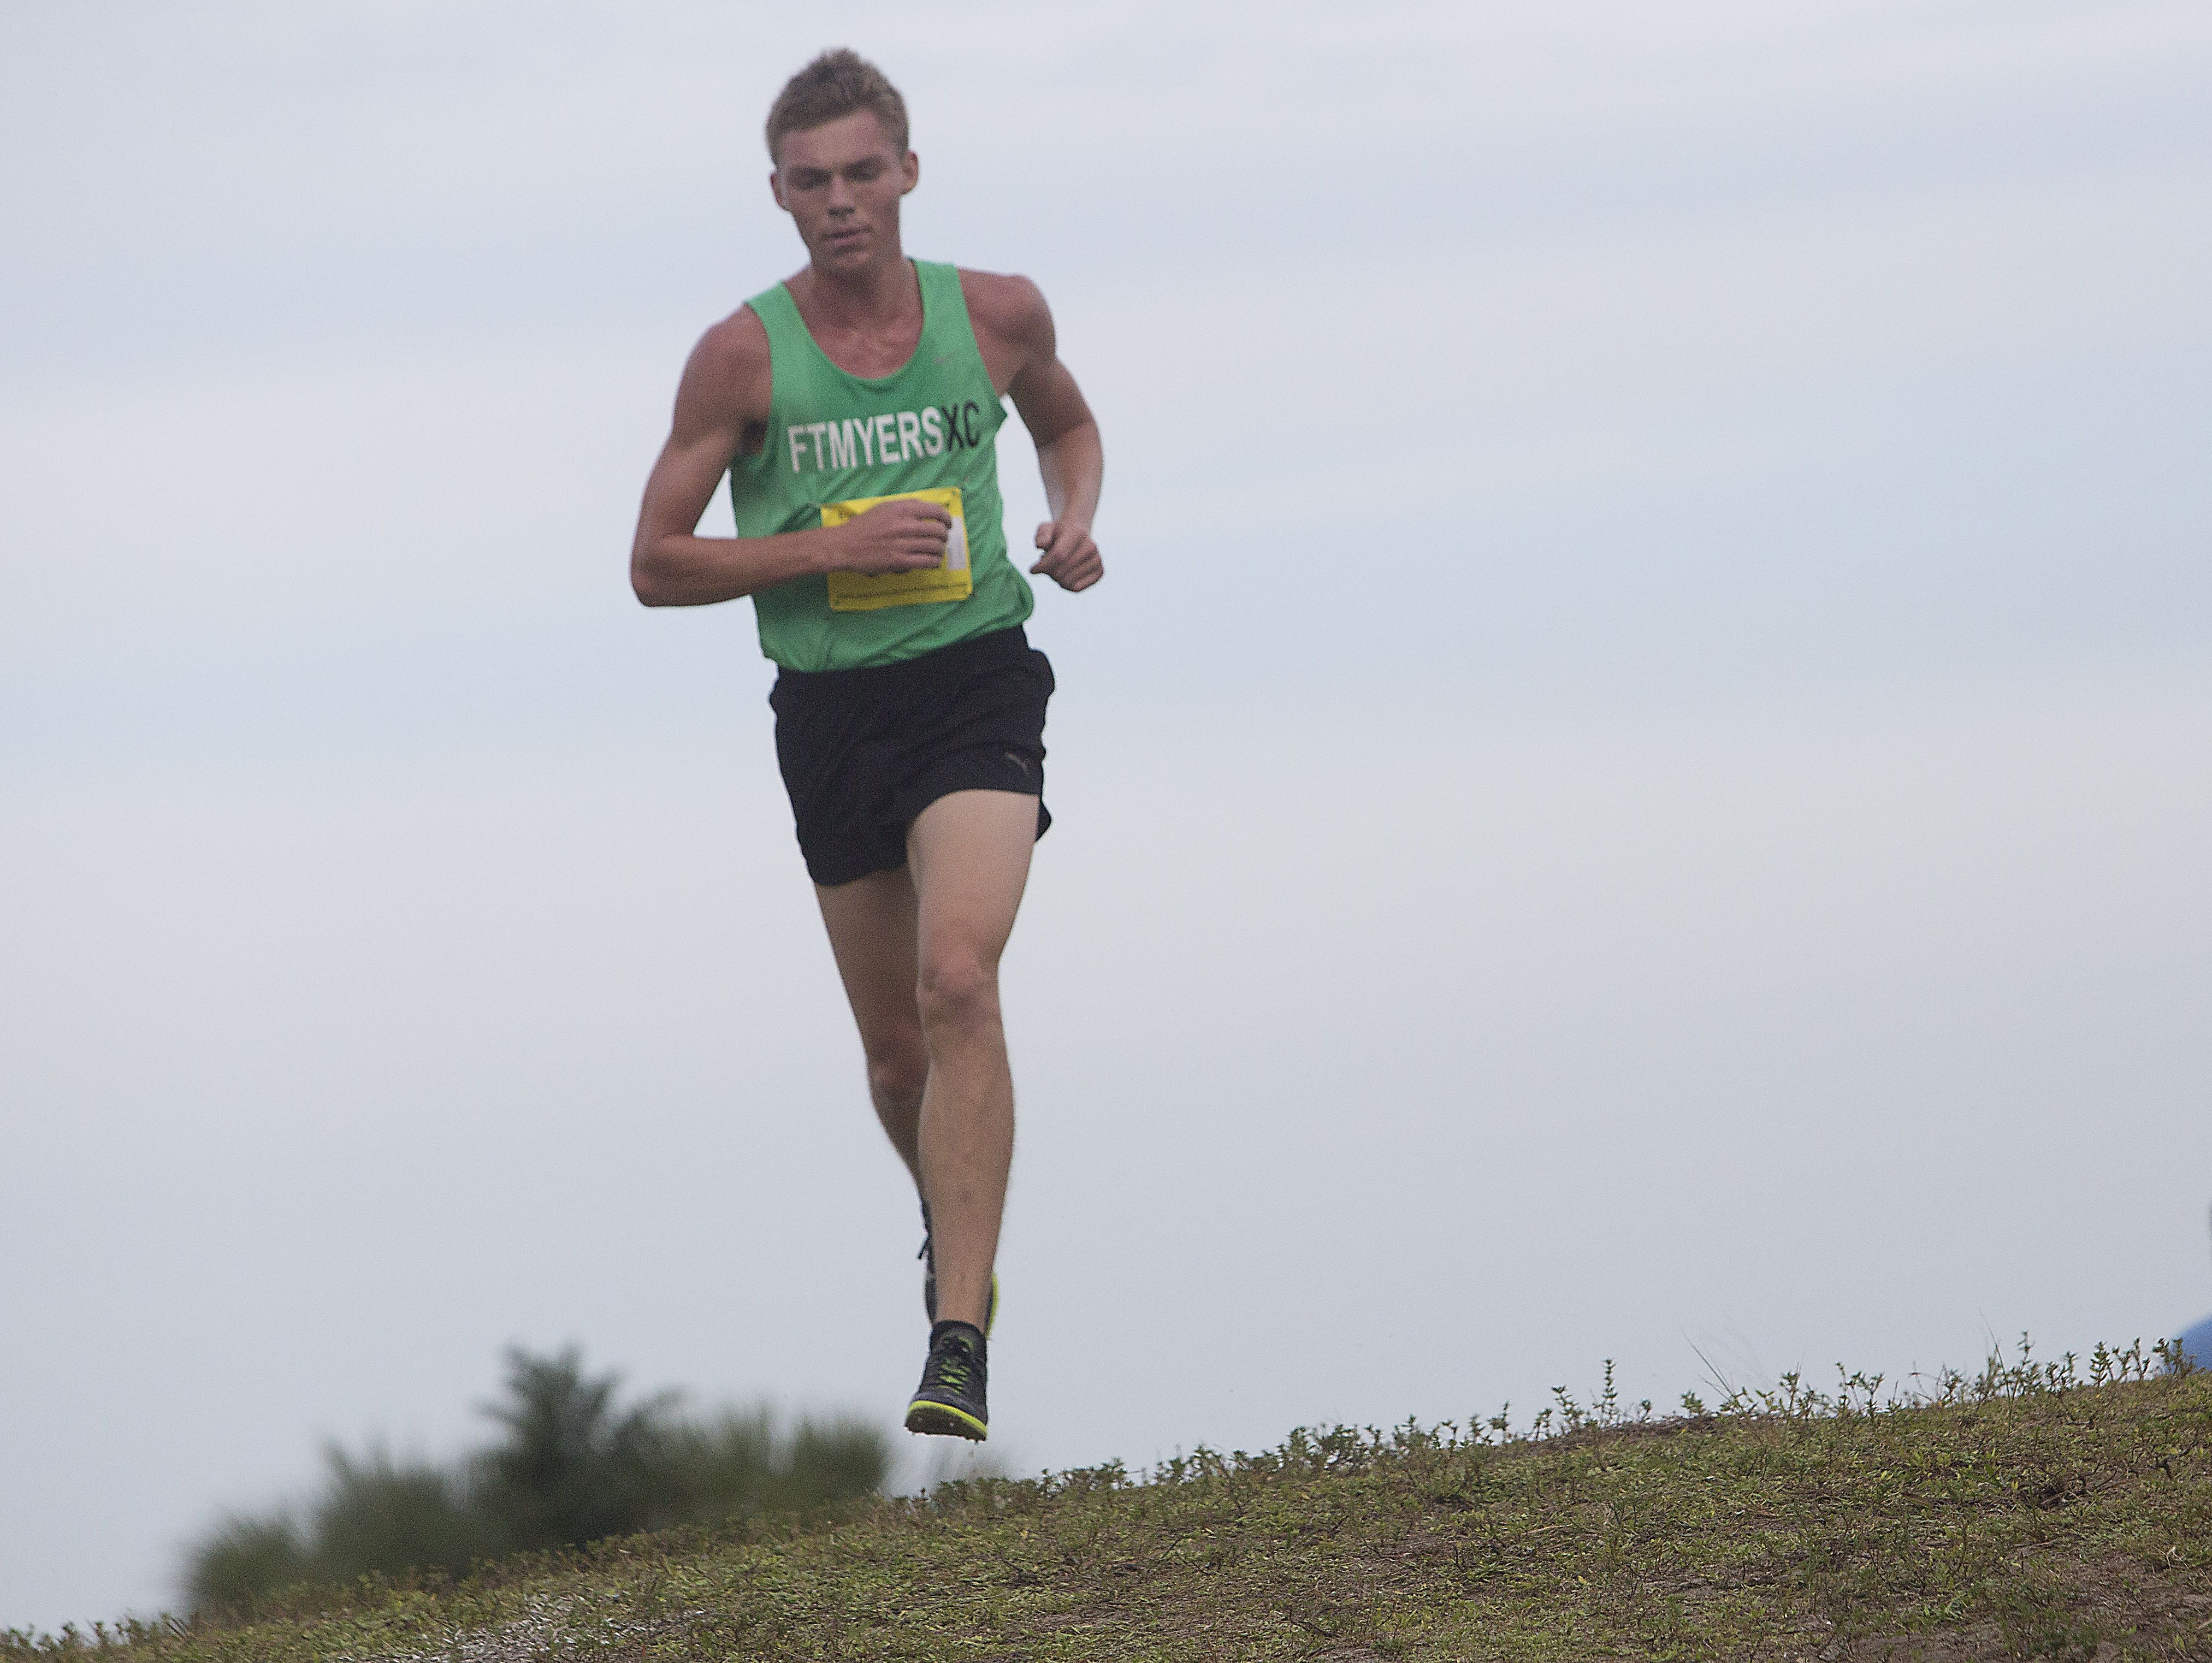 Fort Myers High School x-country runner Evan Babatz cruised to the FHSAA 3A District win at Estero Community Center on Friday.